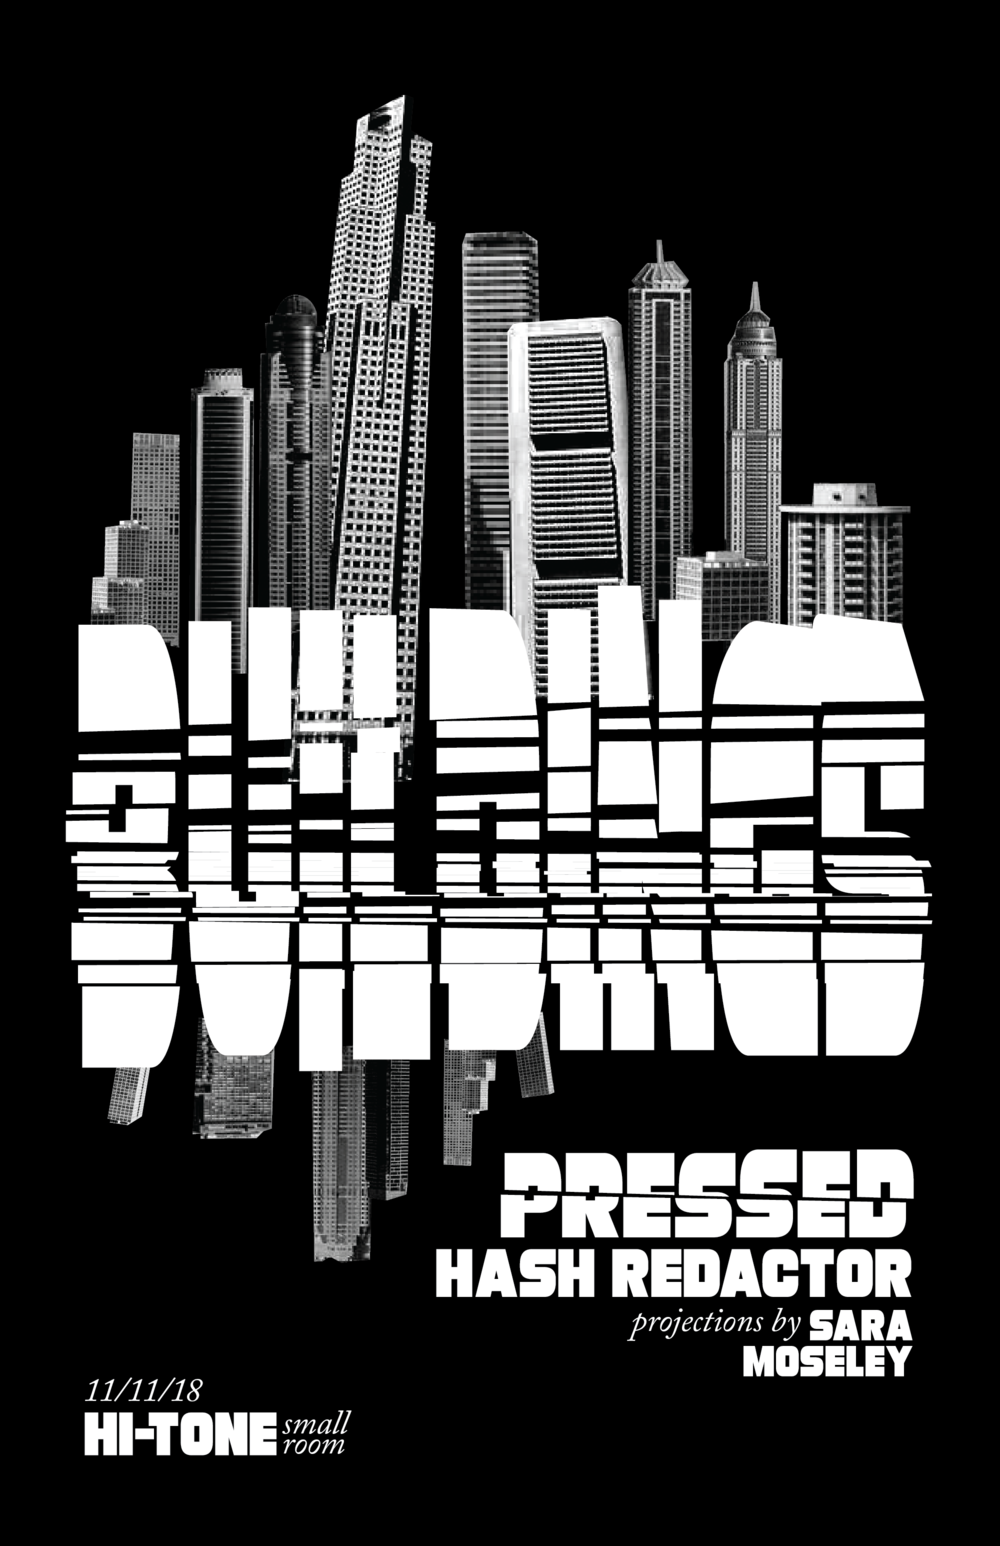 Buildings / Pressed / Hash Redactor